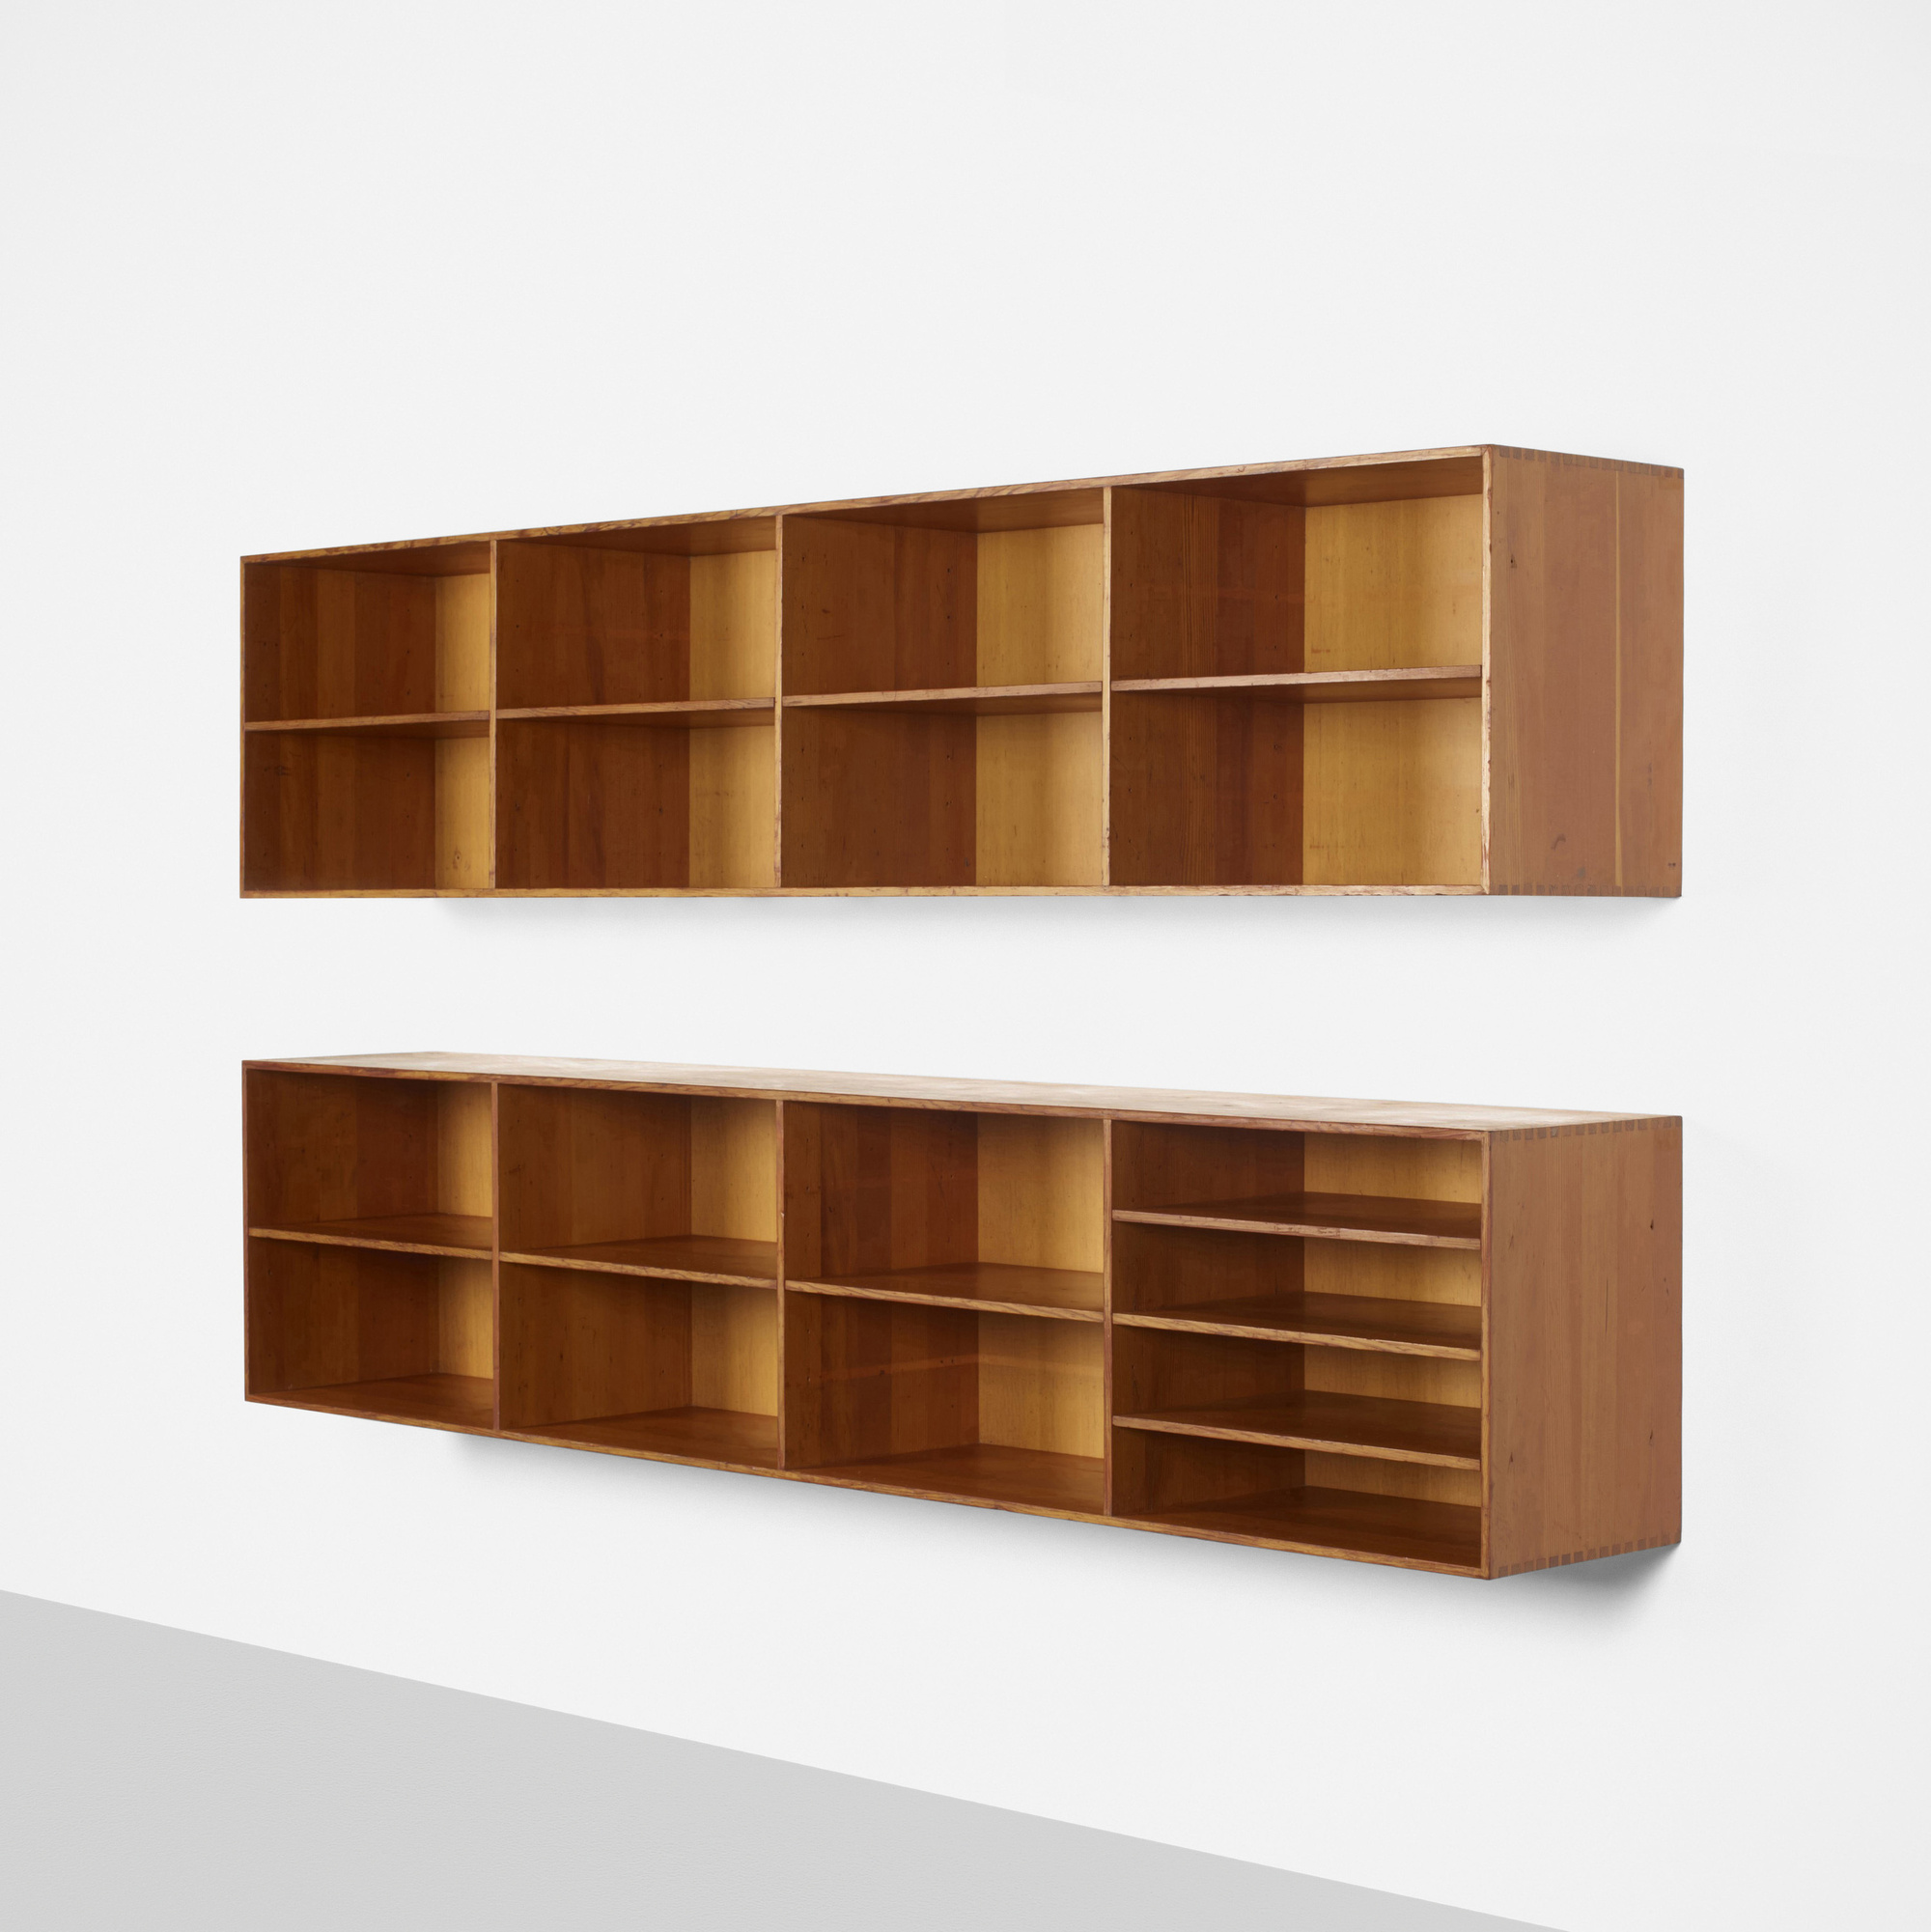 344 Mogens Koch Wall Mounted Bookcases Pair 1 Of 2